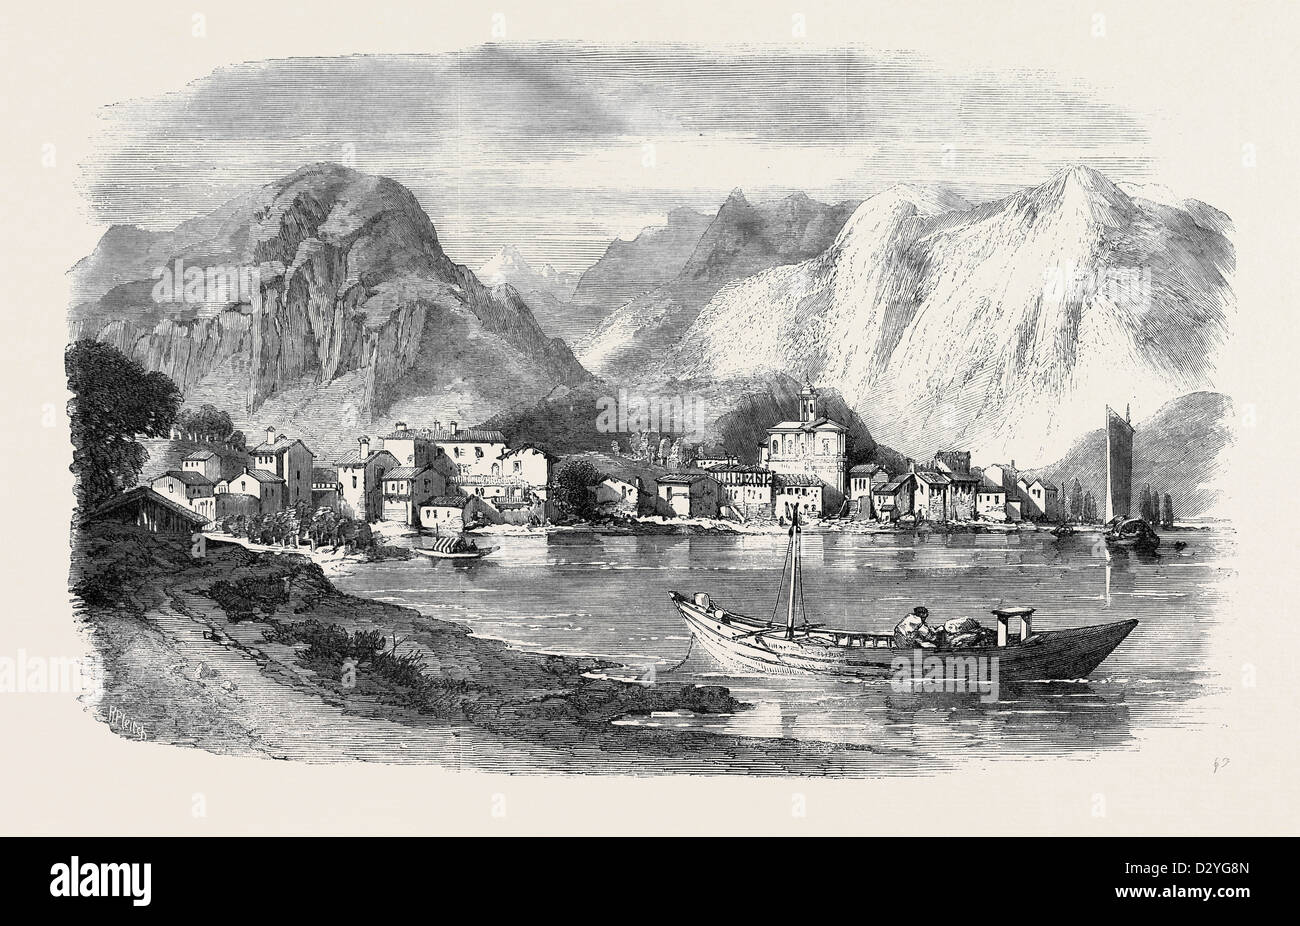 THE WAR FERIOLO ON THE LAGO MAGGIORE FROM A SKETCH BY W.L. LEITCH - Stock Image